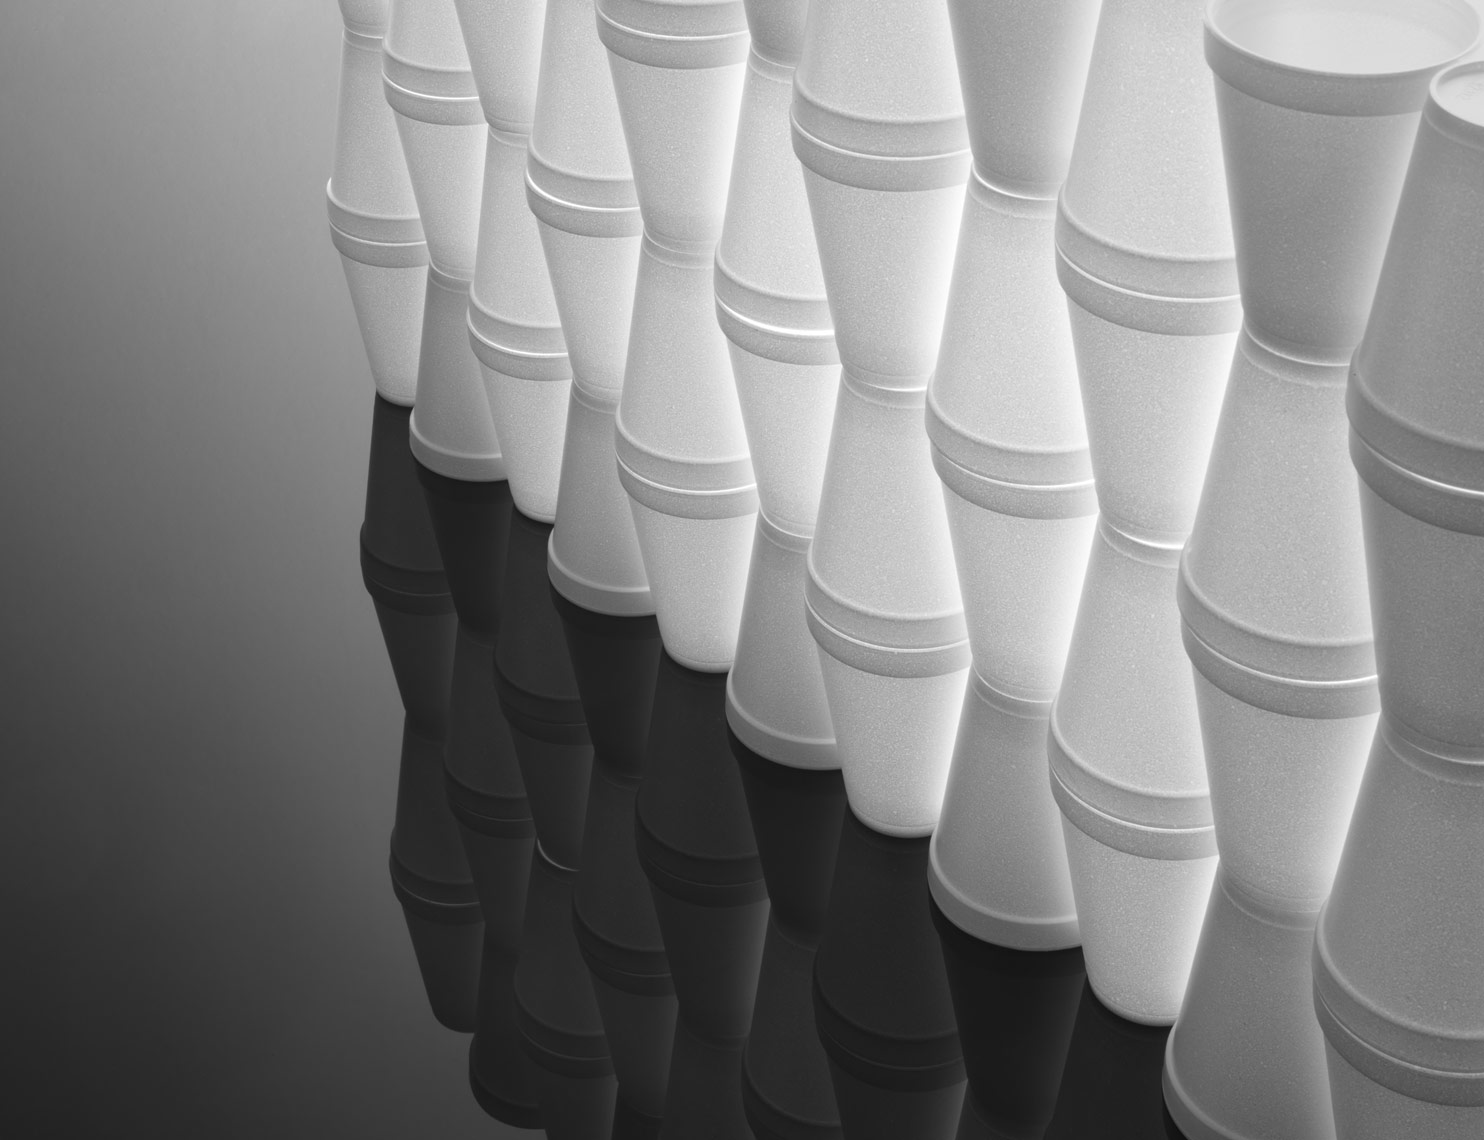 stacked styrofoam cups on black plexiglass